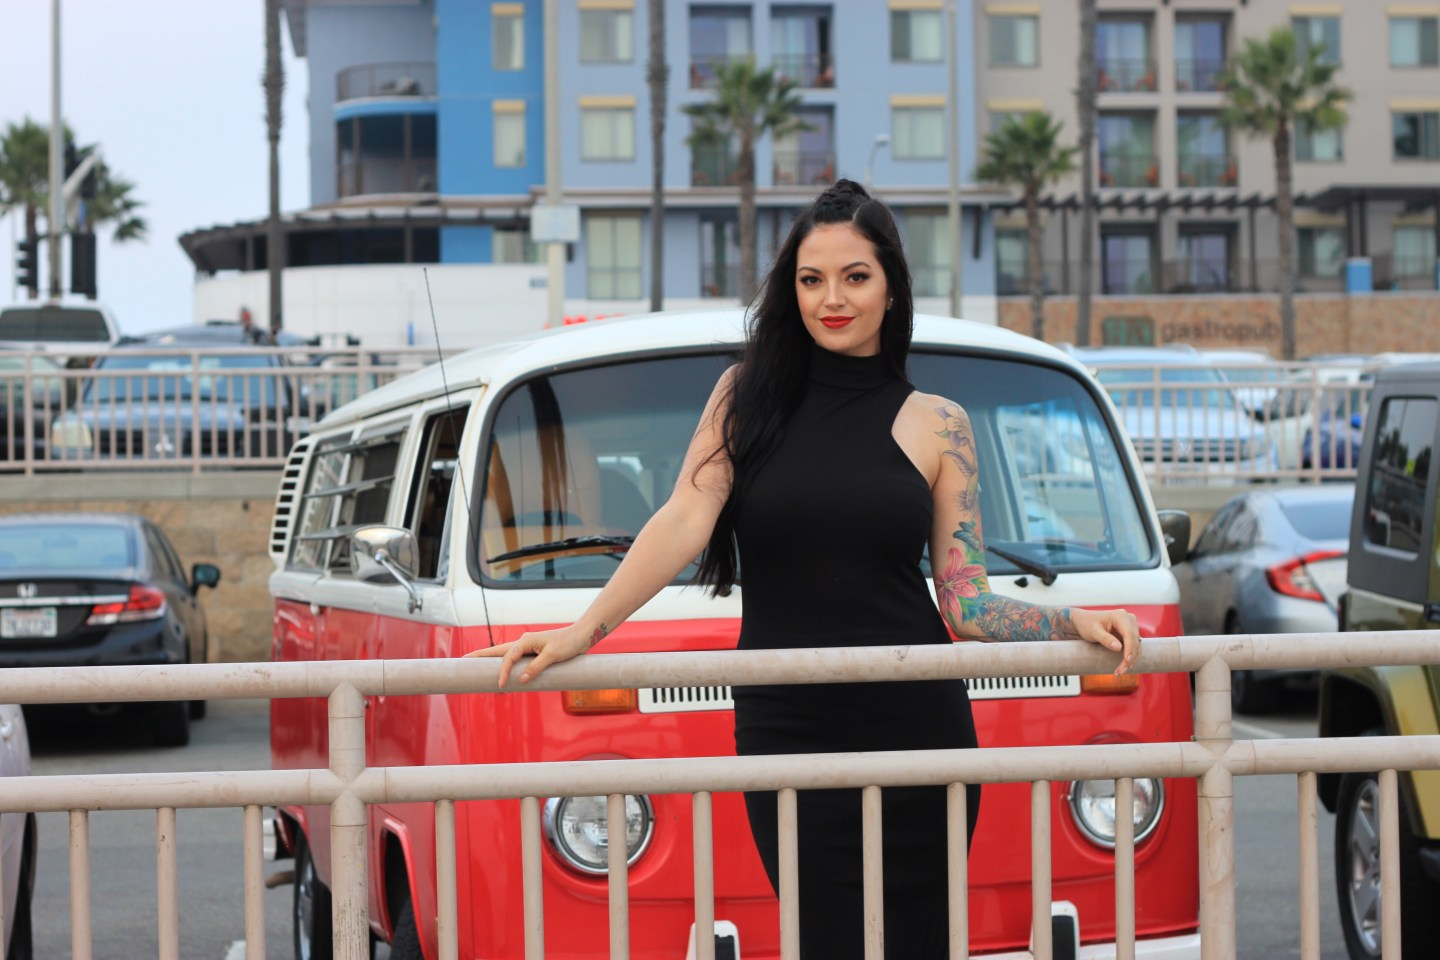 Get Ready with Me for a Holiday Card with the SoCal Blogger Babes